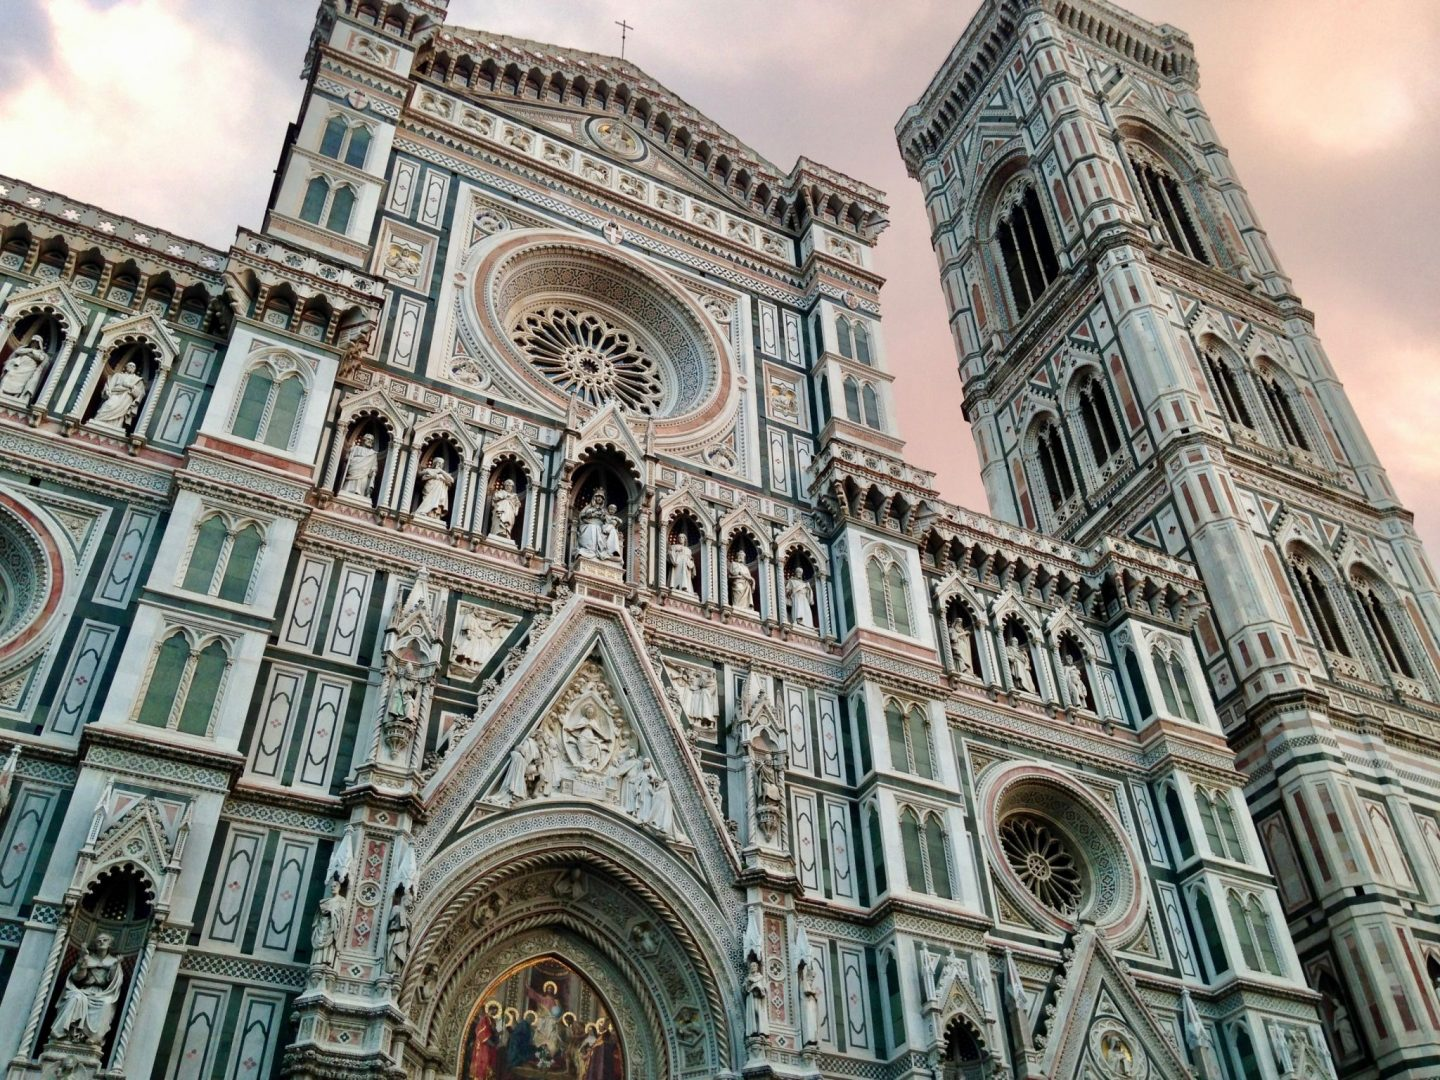 My favourite sights in Florence, Italy